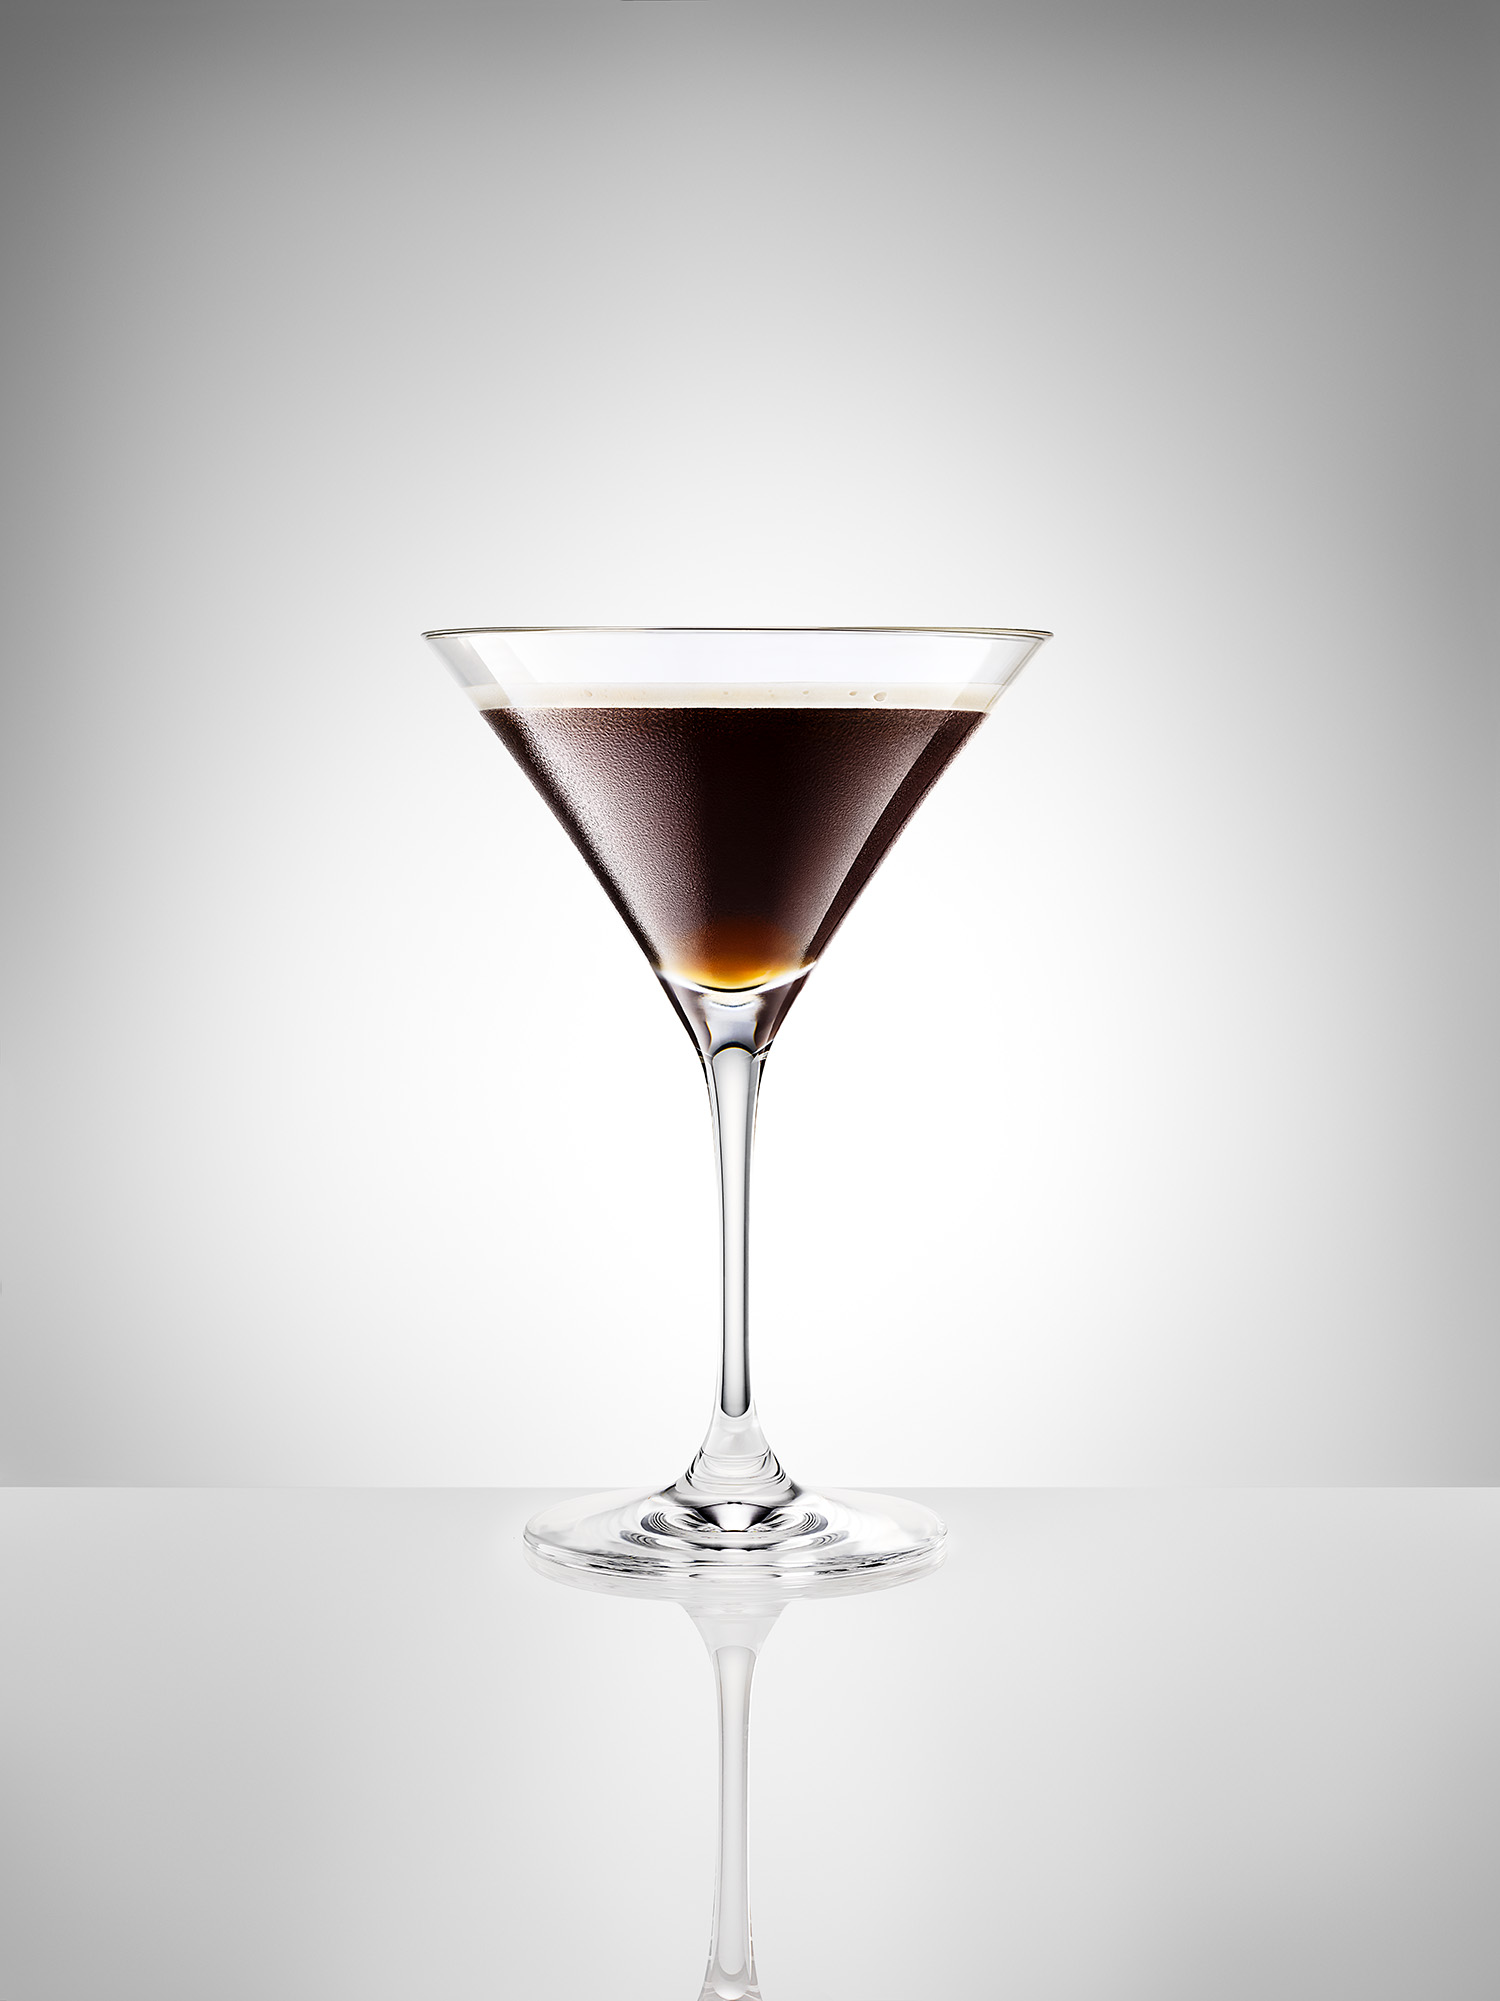 1850in_C_0017_18_49_50 ZS PMax-Espresso-Martini copy.jpg